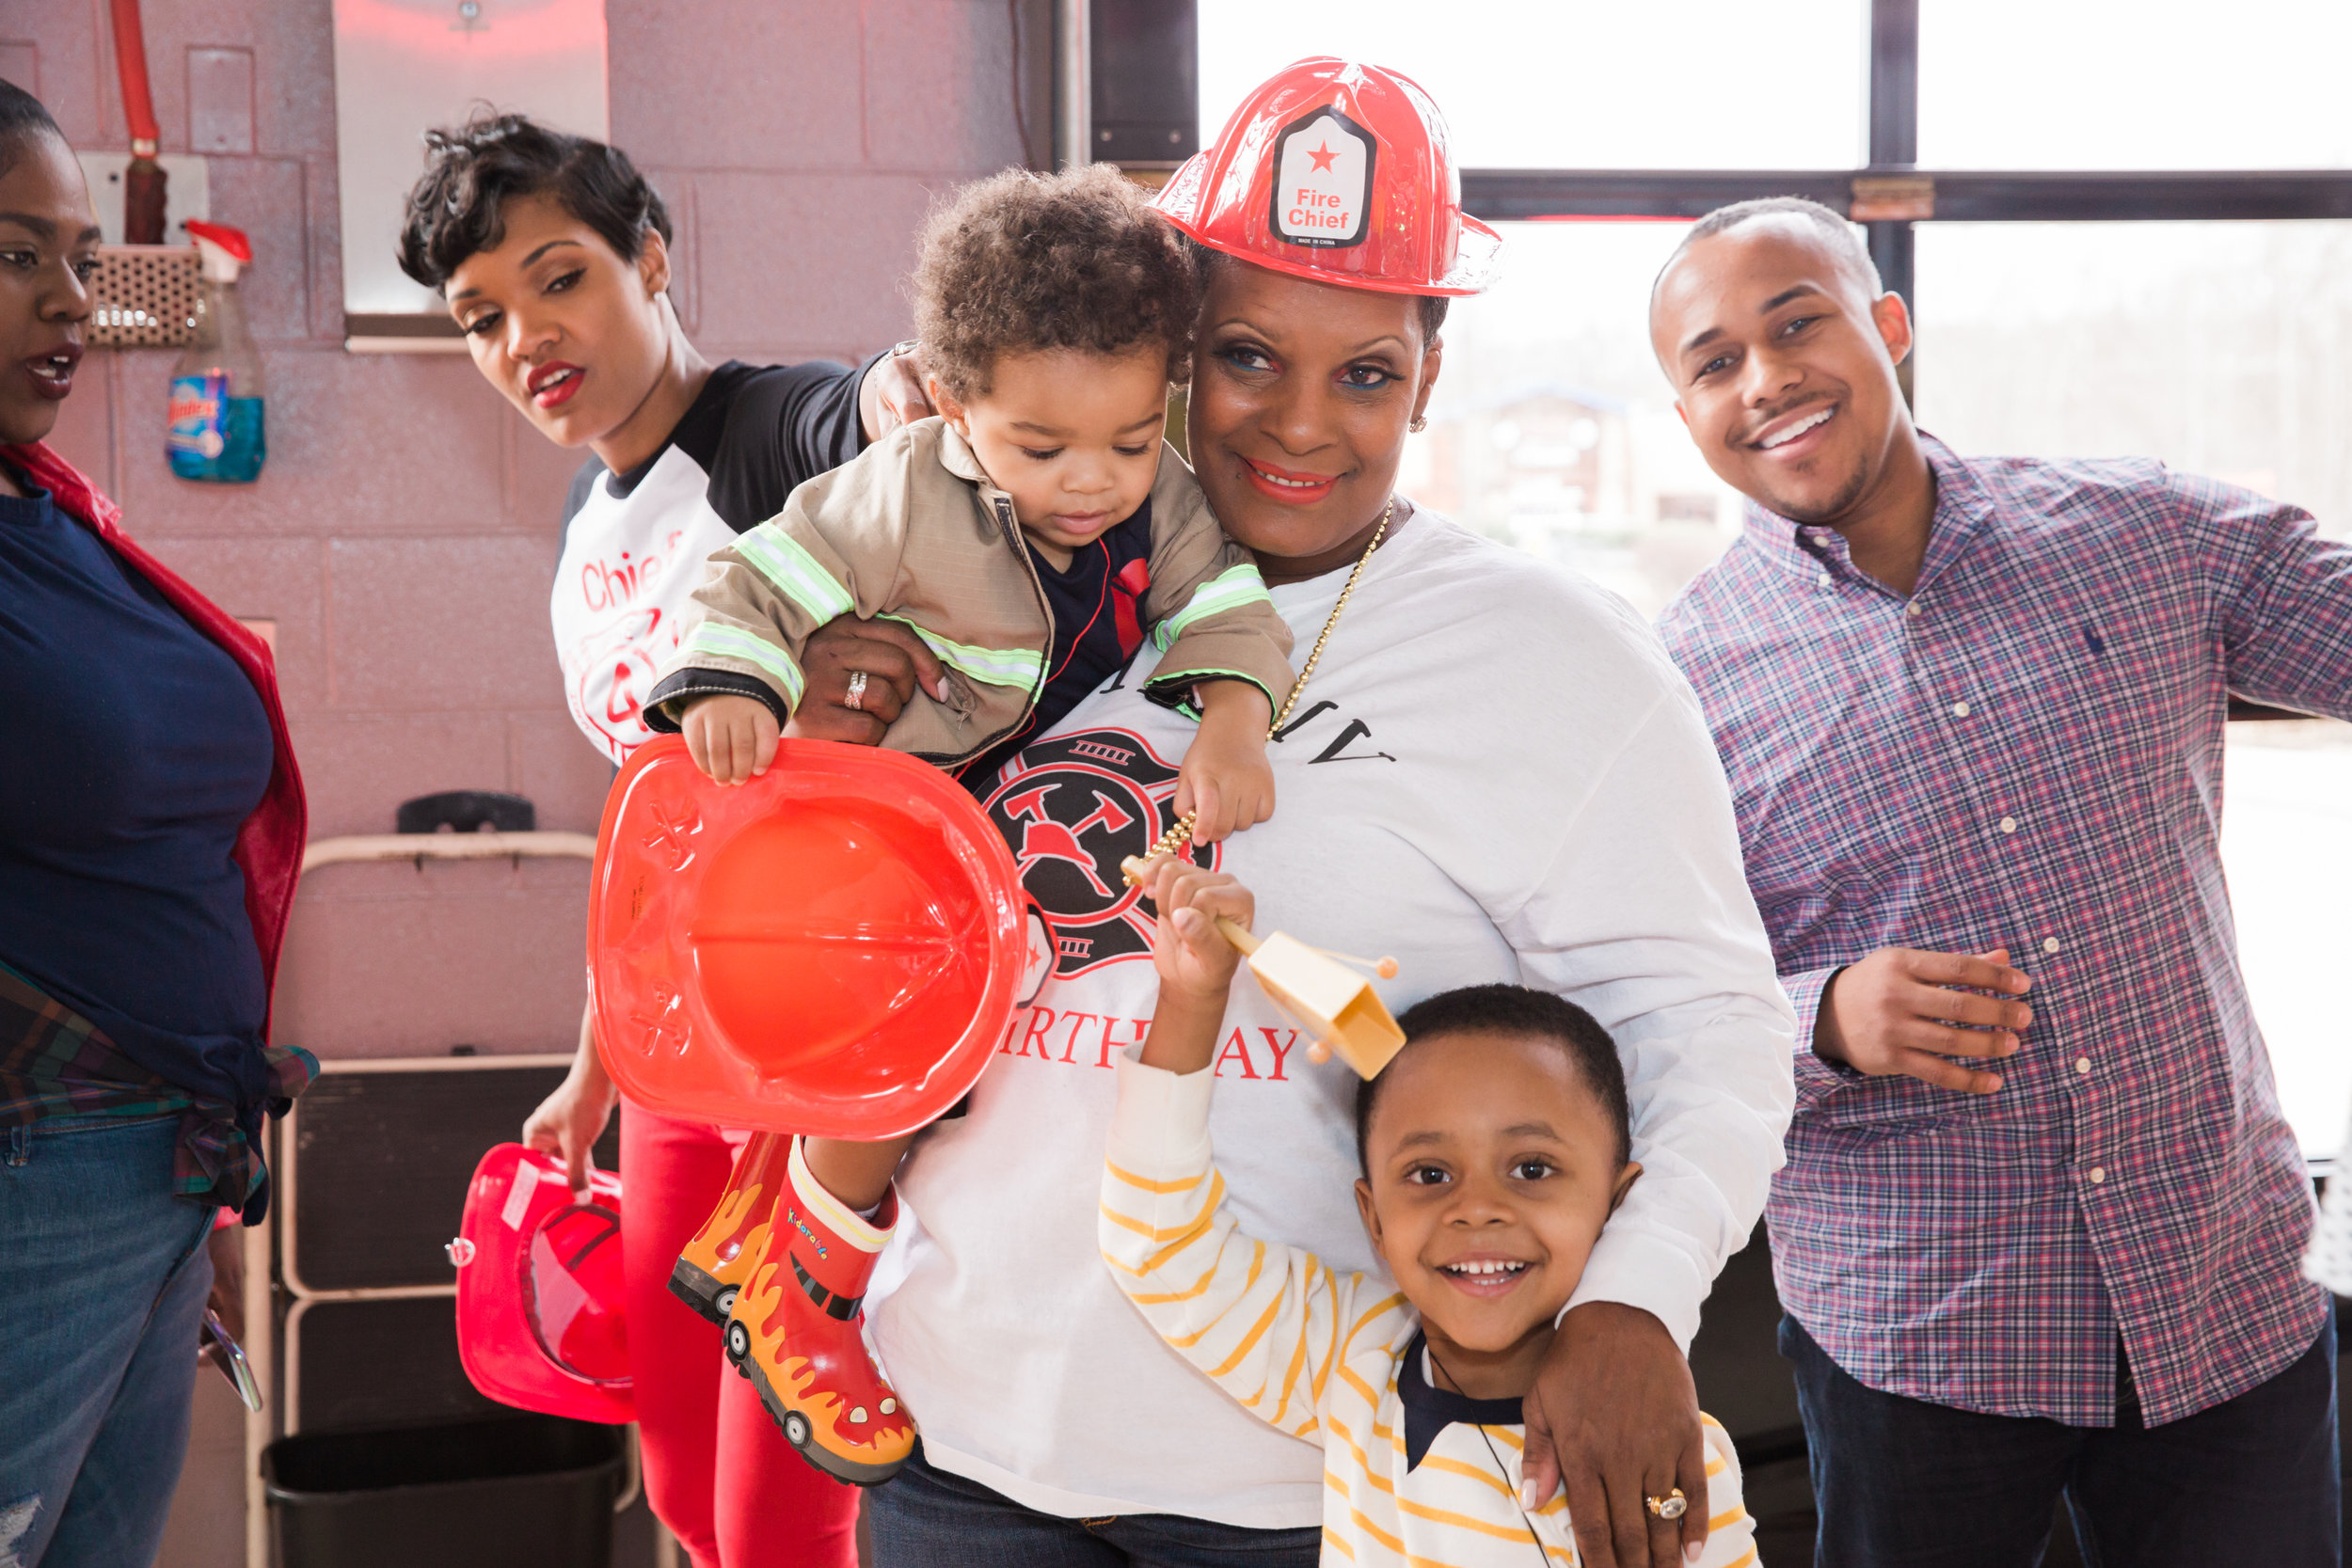 Fireman Birthday Party Ideas  Decorations Owings Mills Fire Department Maryland Family Photographers Megapixels Media Photography (54 of 55).jpg